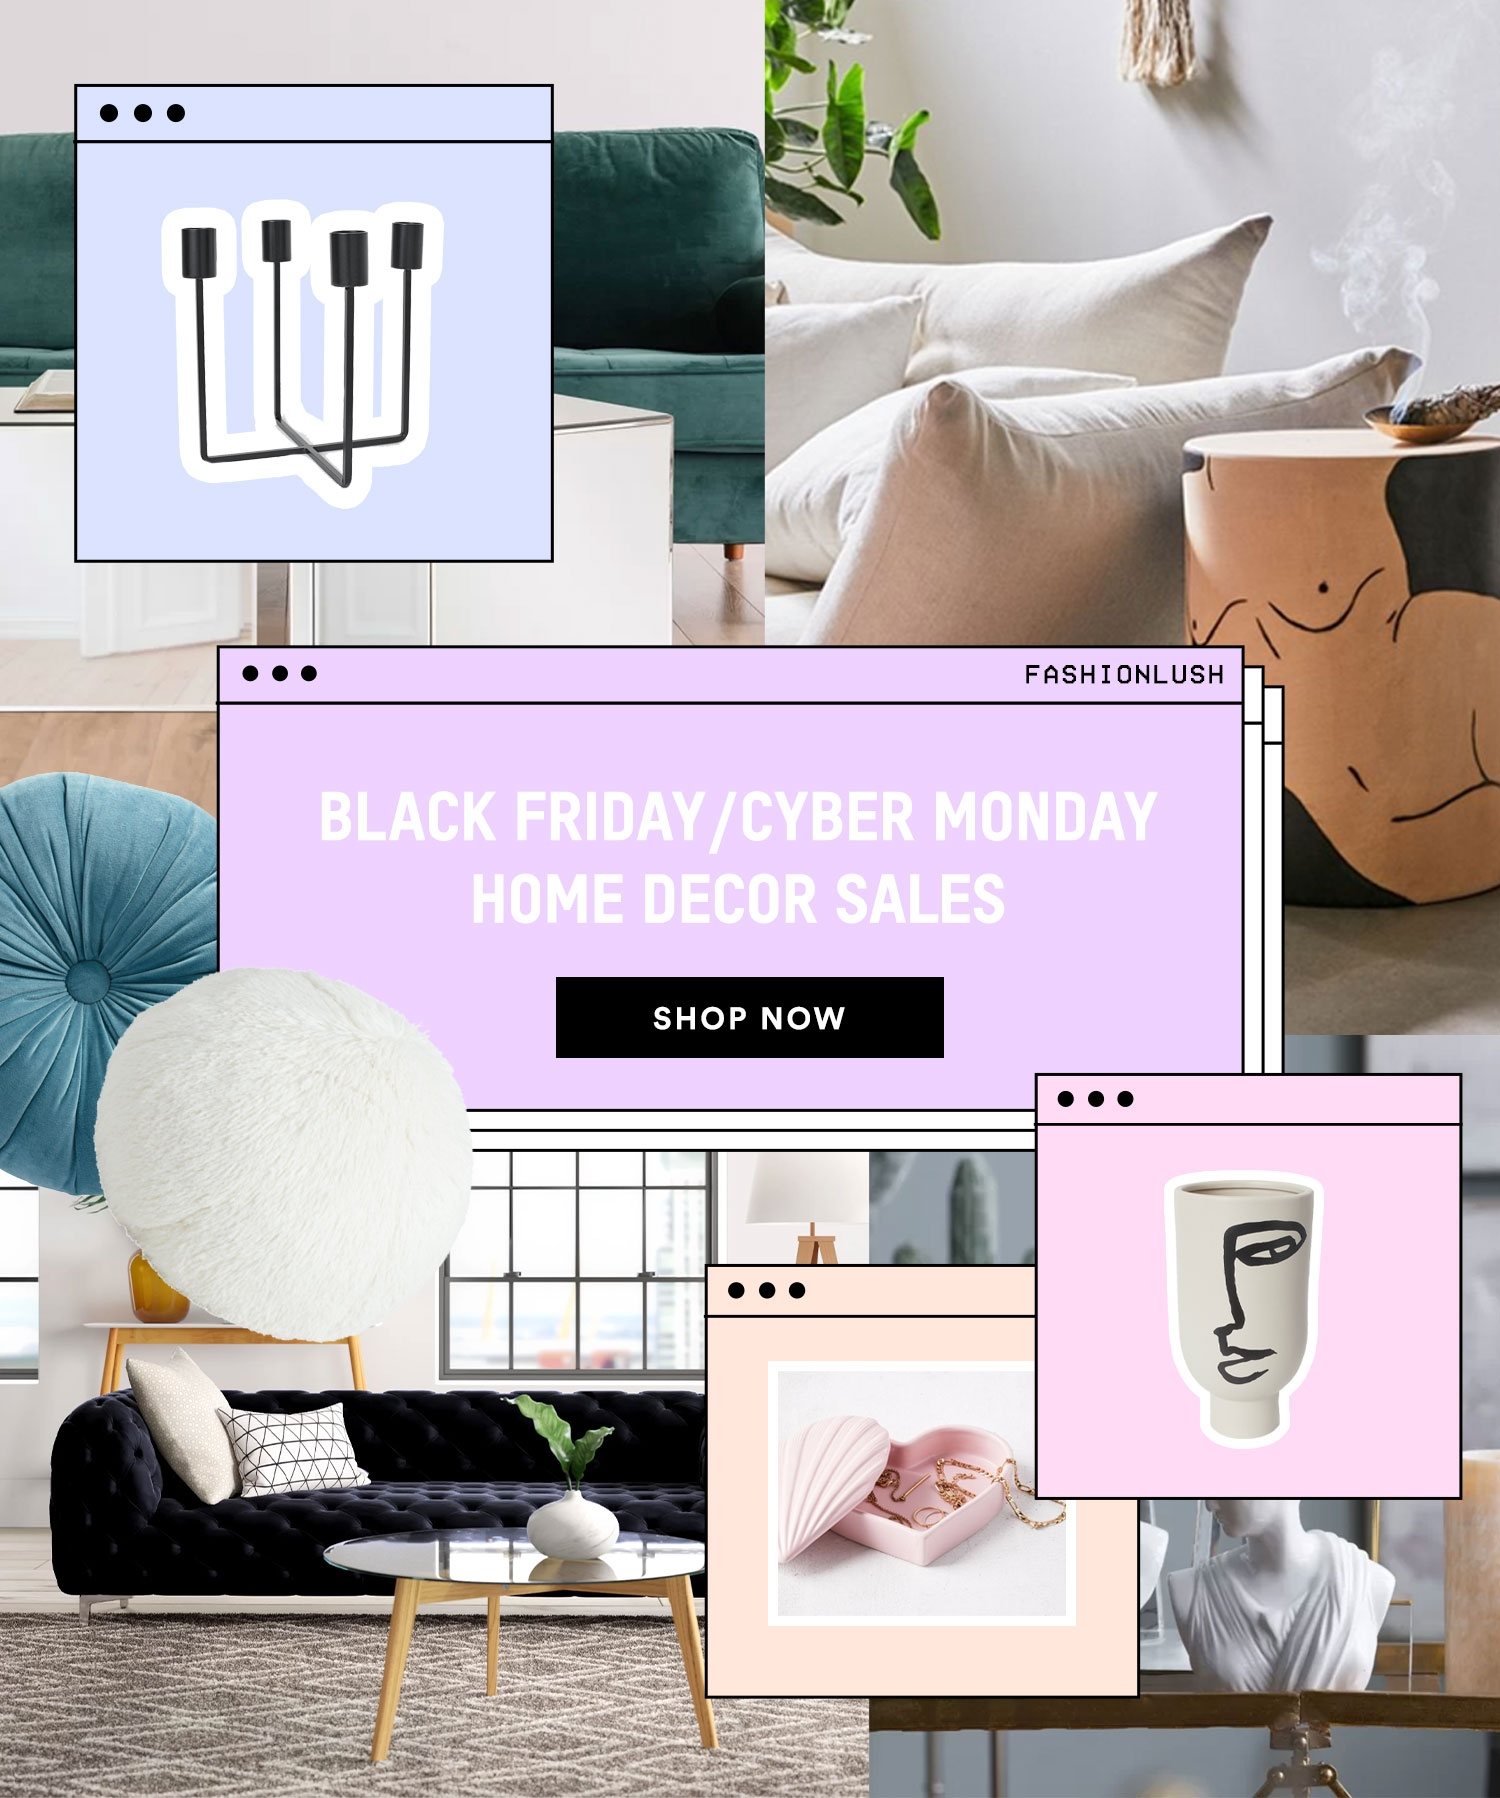 The 5 Home Decor Black Friday/Cyber Monday Sales I'm Shopping